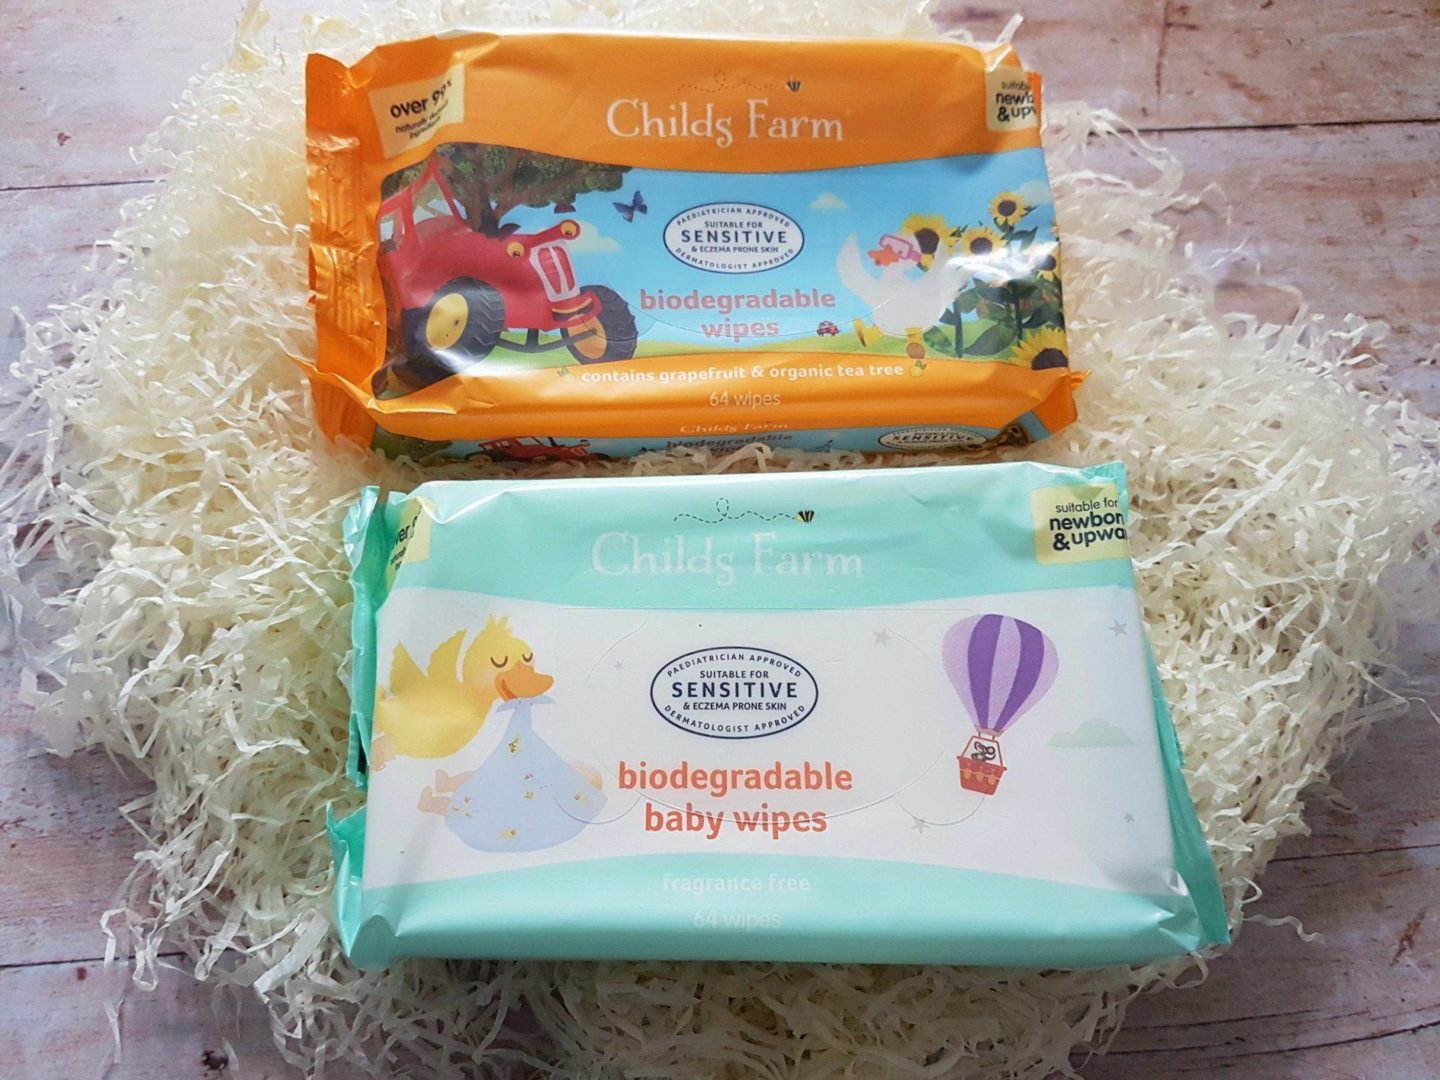 Childs Farm Biodegradable Baby Wipes